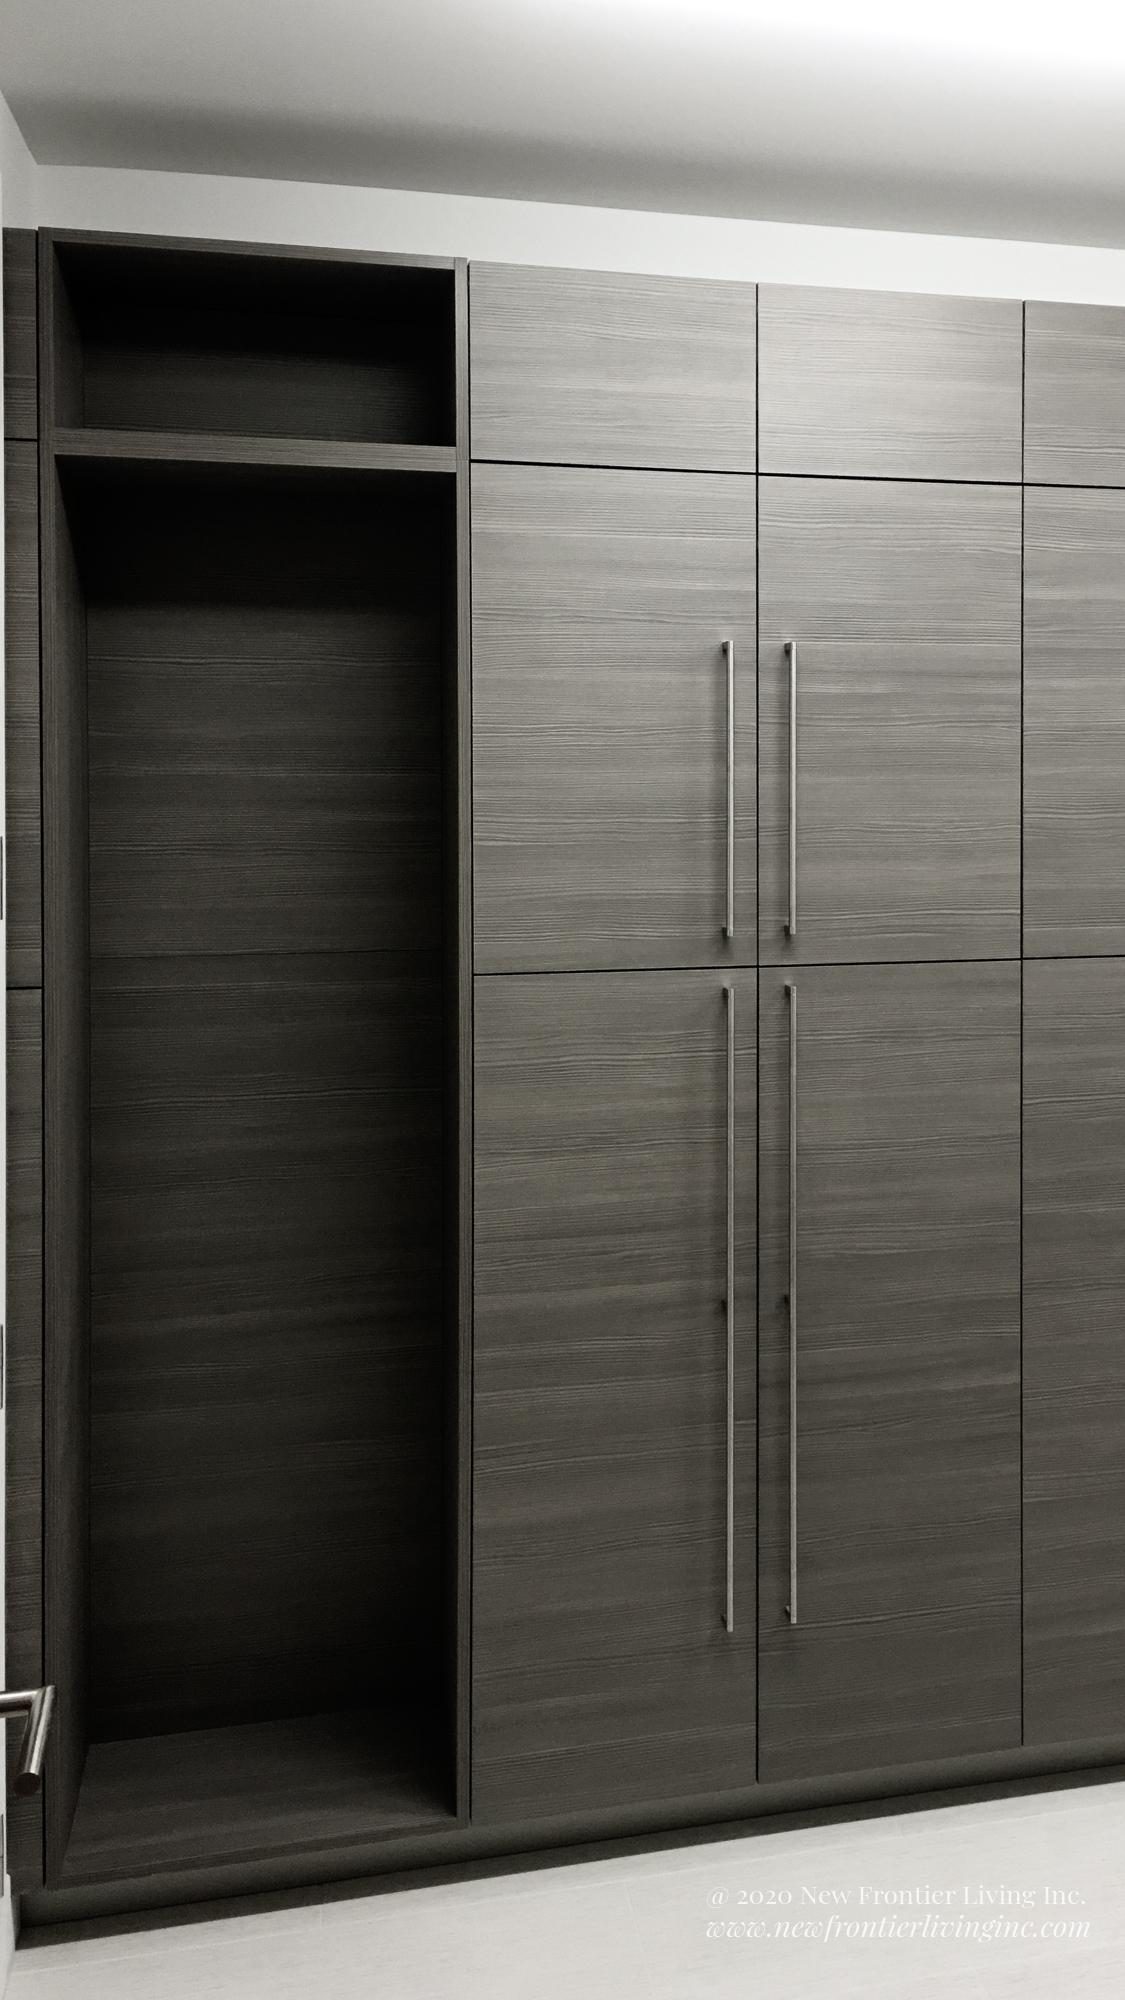 Large dark gray wooden cabinetry covering entire wall with silver handles